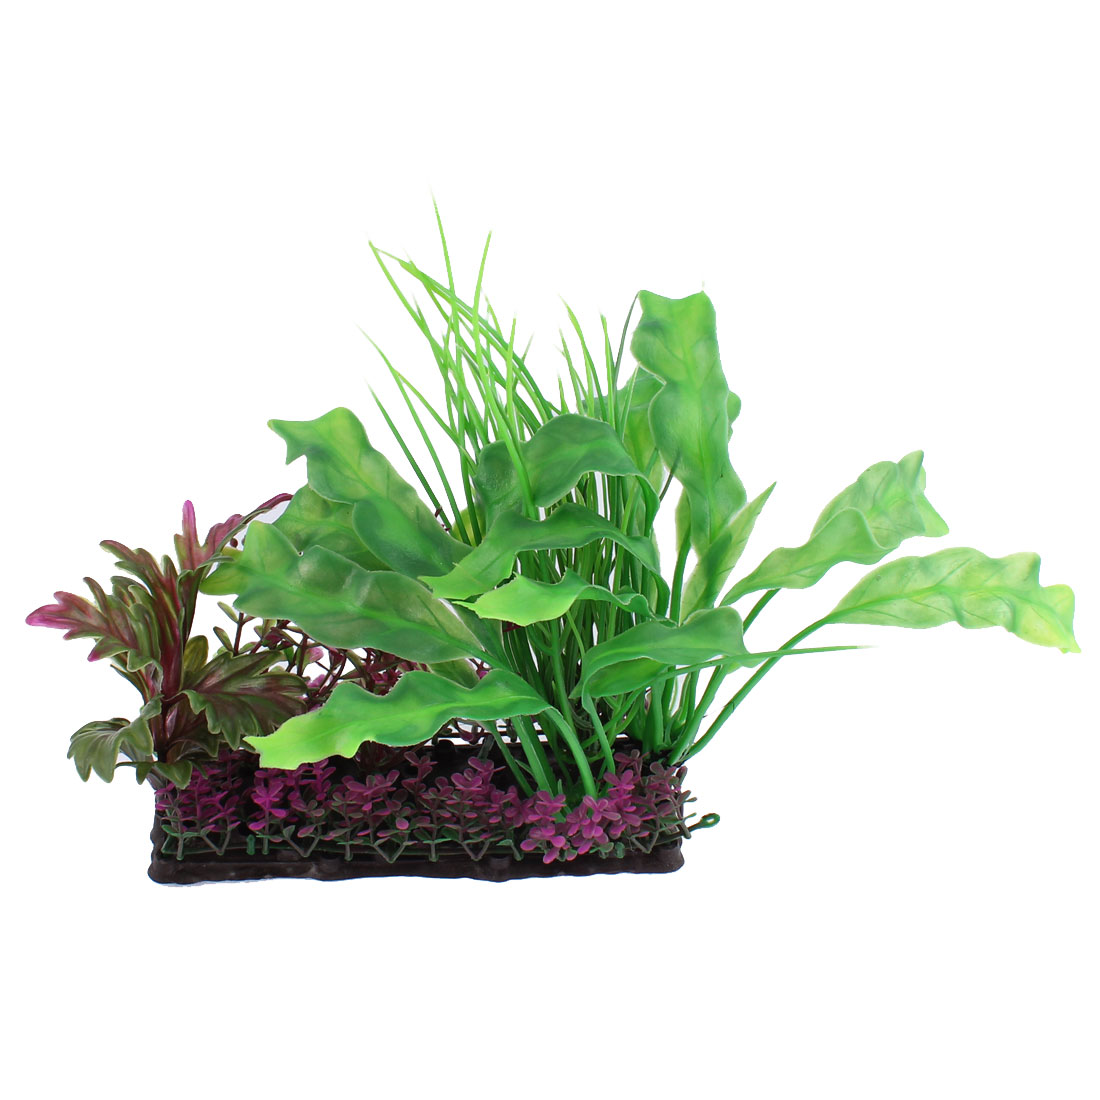 Aquarium Emulational Plastic Grass Plant Ornament 18 x 18cm